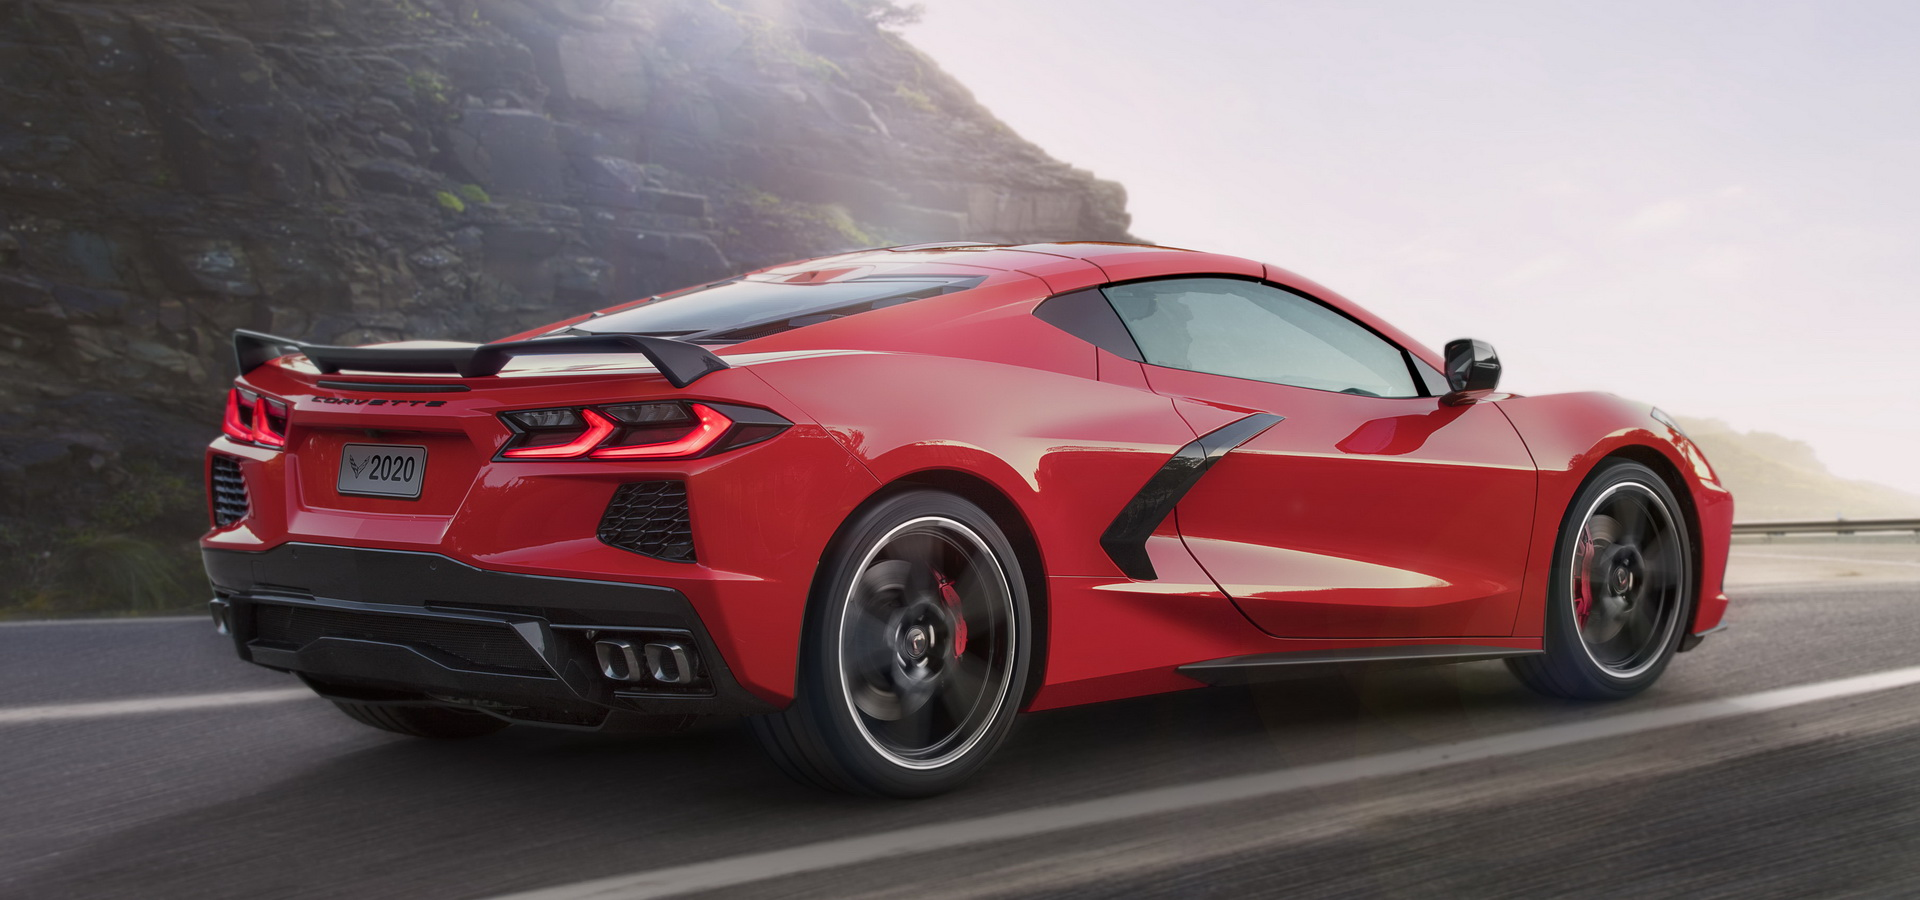 2020 Corvette Stingray Is Sort Of A Modern Ferrari 458 But Which Would You Rather Have Carscoops